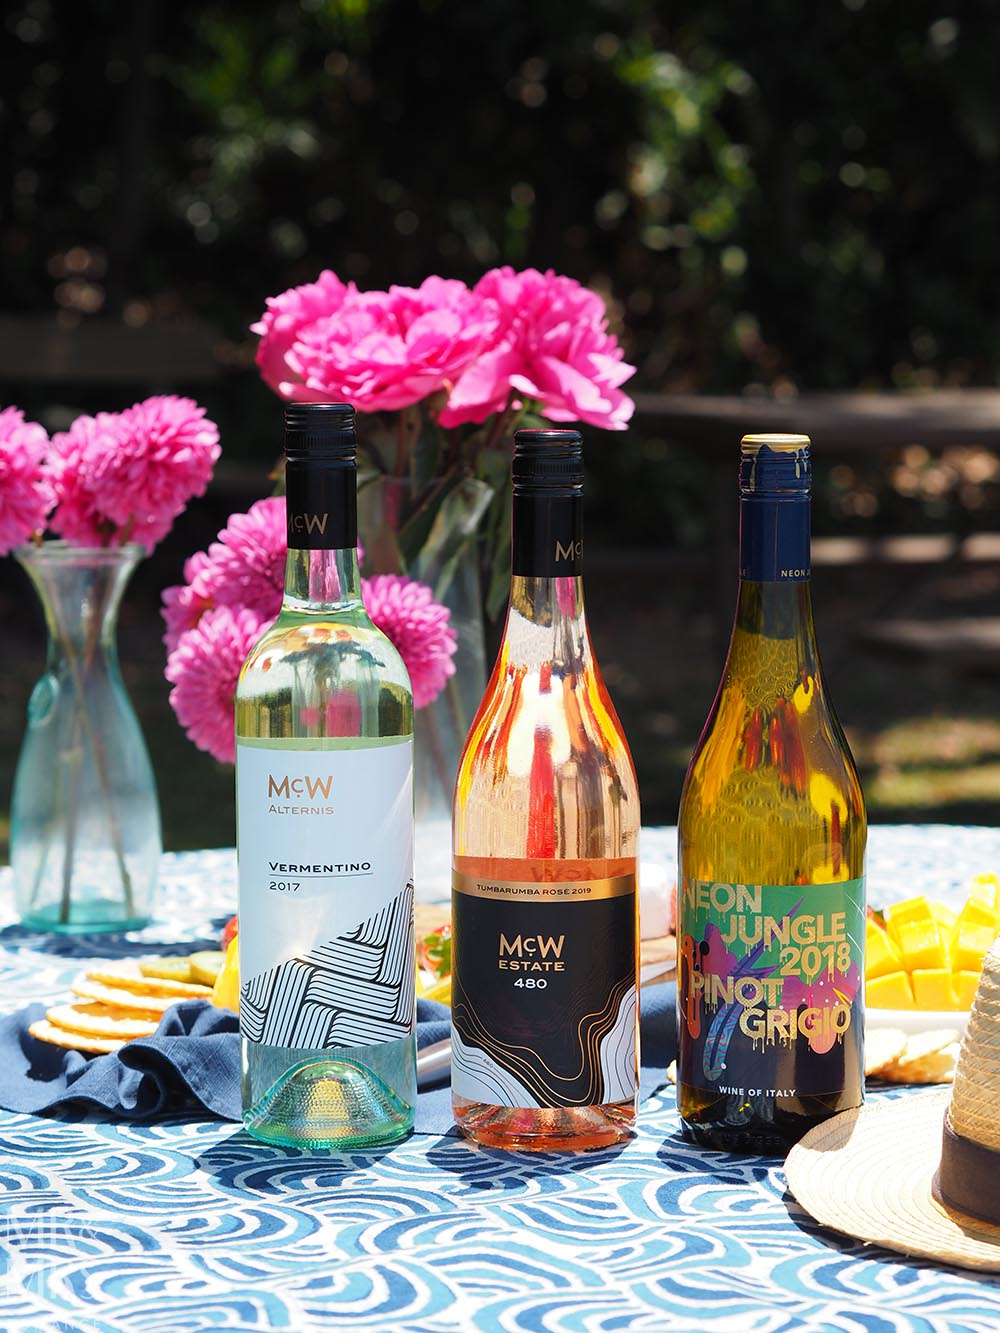 Summer party wines - Neon Jungle Pinot Grigio McW 480 Tumbarumba rose McW Alternis Vermentino